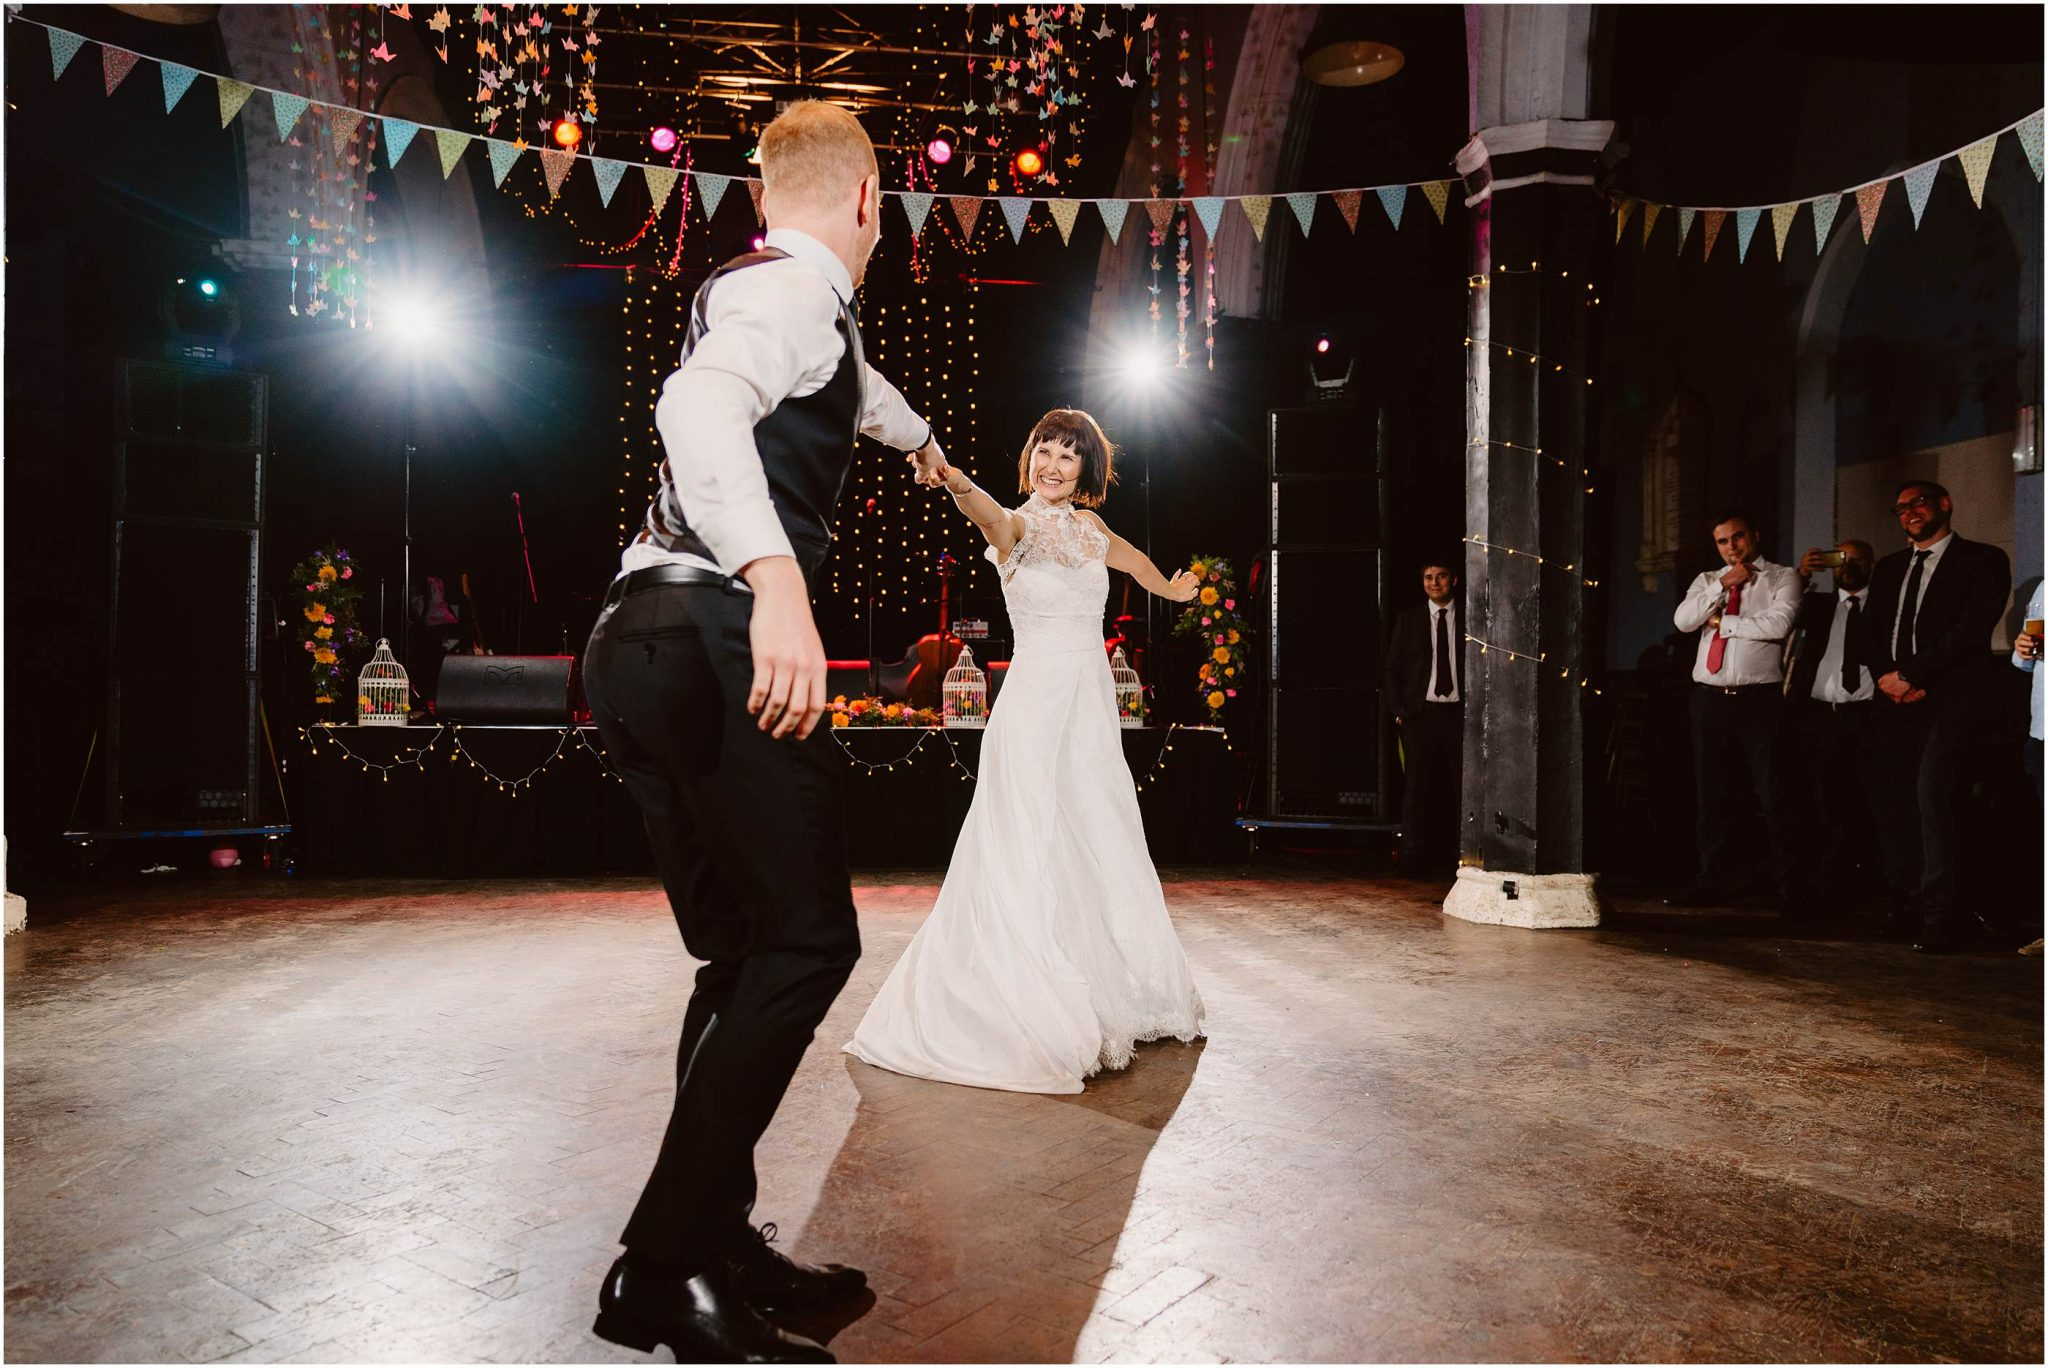 BERNIE & JAMES' STRANGERS HALL AND NORWICH ARTS CENTRE WEDDING